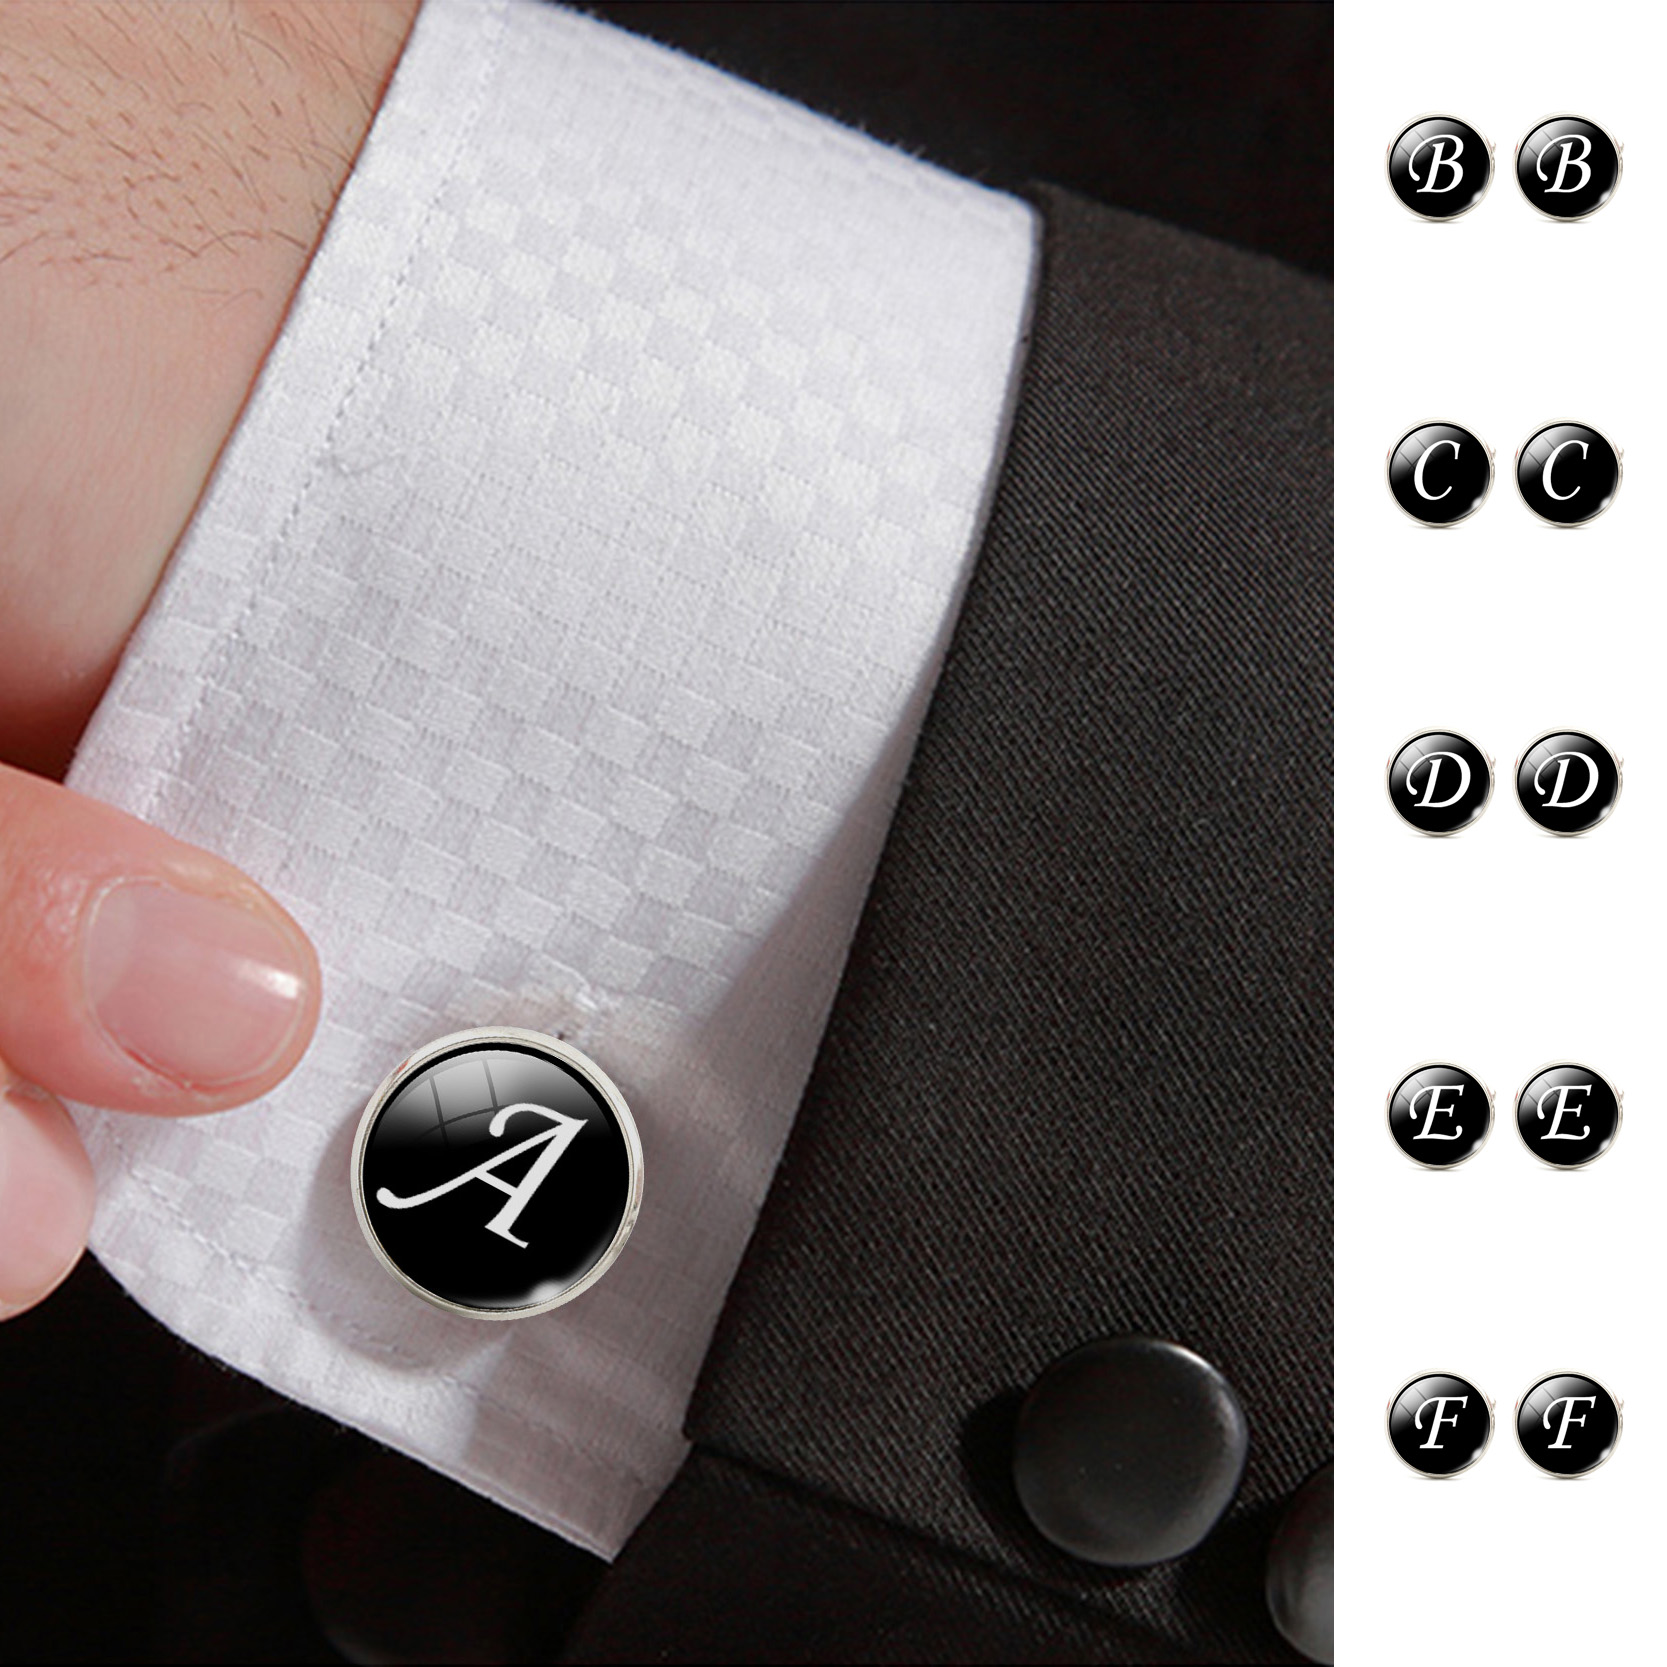 fashion jewelry men cufflinks alphabet single letter black bottom silver plated wedding party vintage 16mm men cuff link 2017